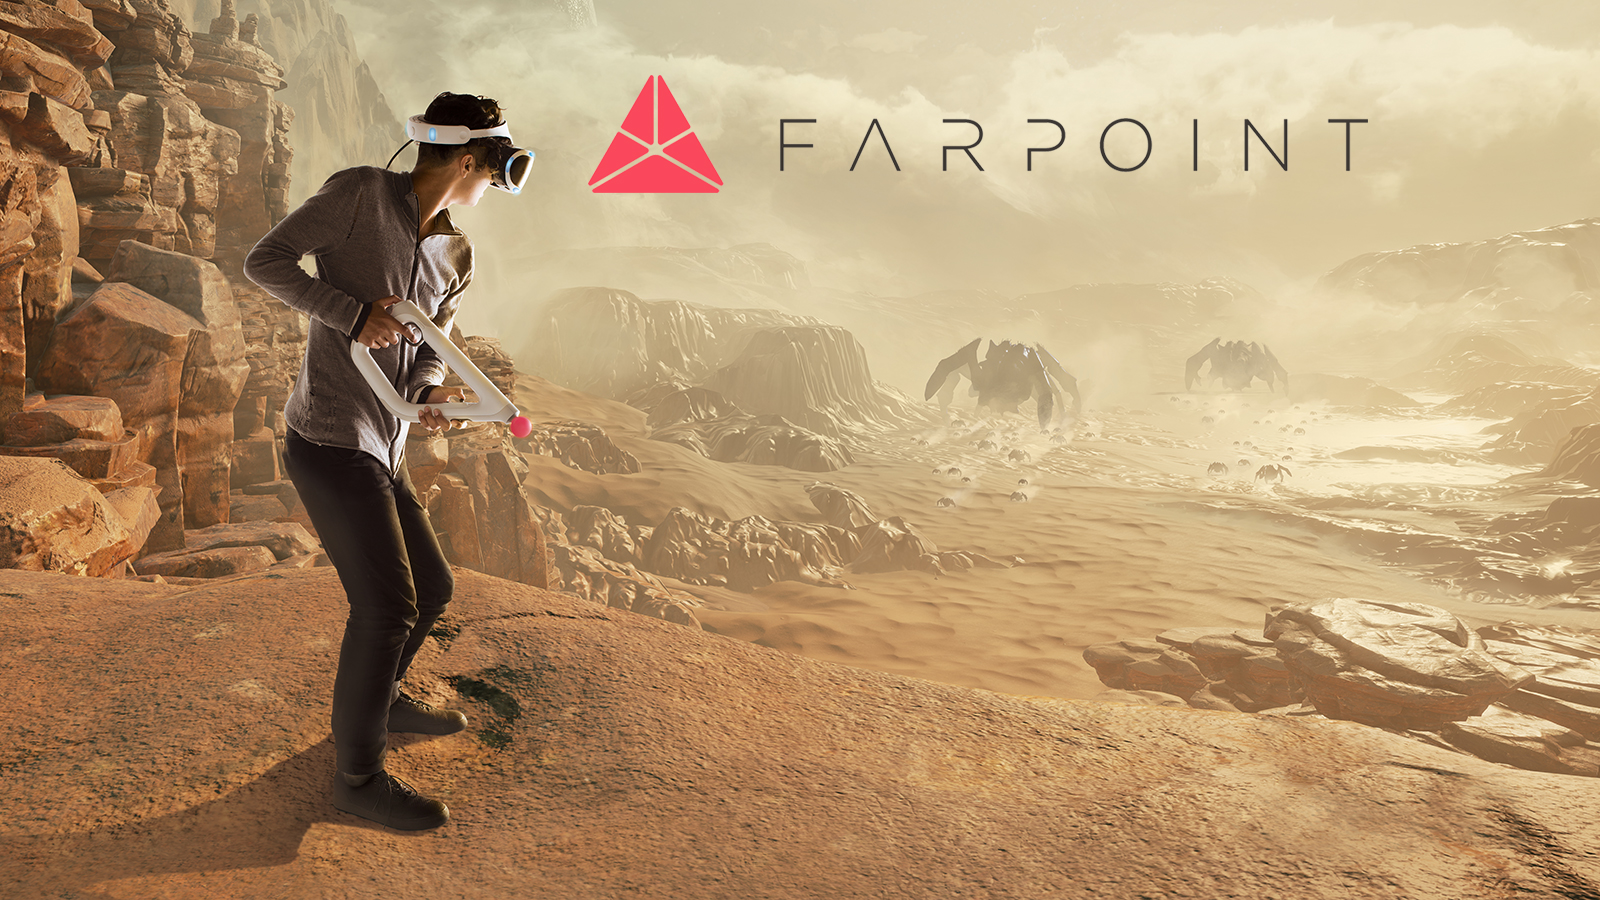 Farpoint for PlayStation VR gave me virtual reality